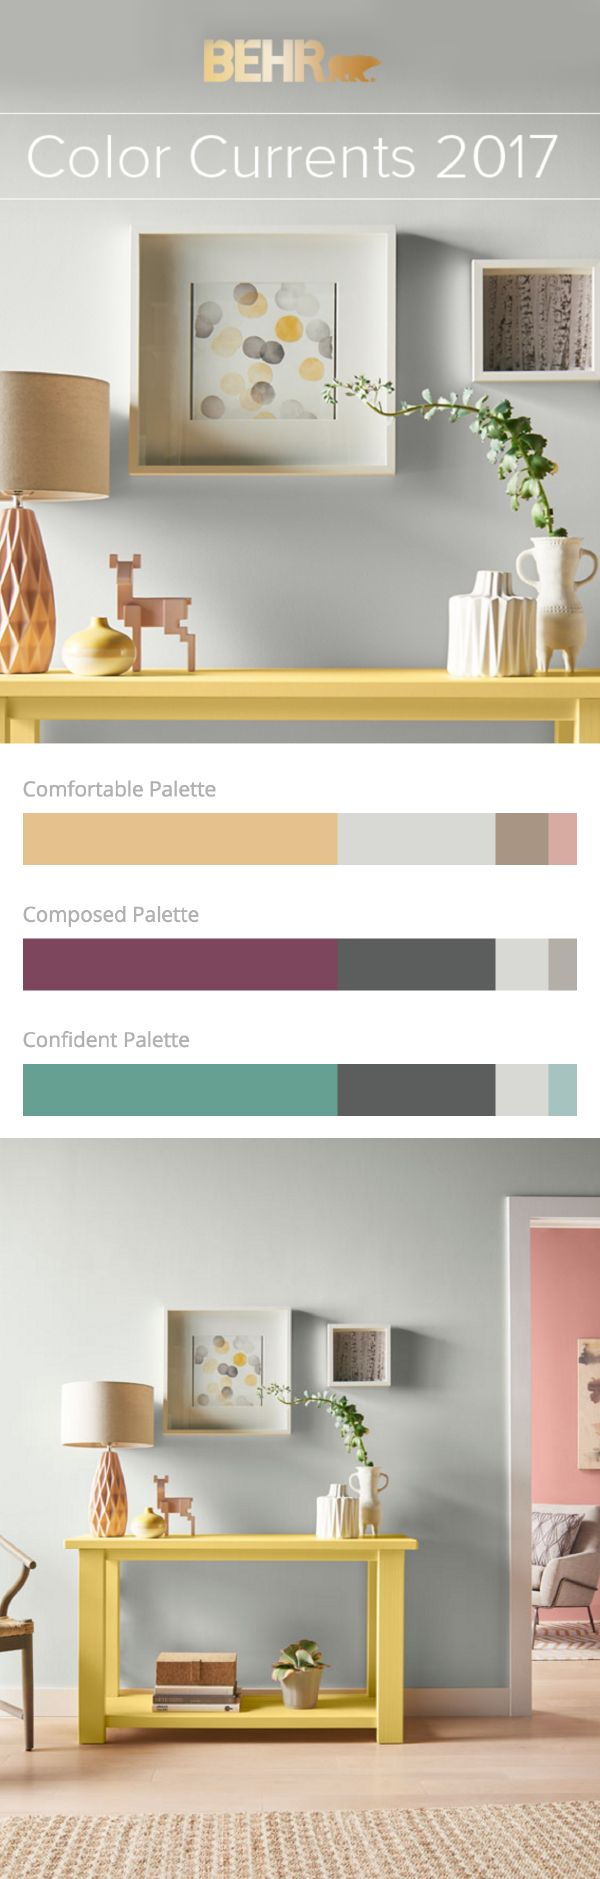 Comfortable, composed, or confident—which BEHR 2017 Color Currents palette will you choose? These livable, fashion-forward hues will really freshen up your space this season. Whether you lean towards soothing, bold, or cheerful hues, there is a paint color in this collection to match your home decor style.